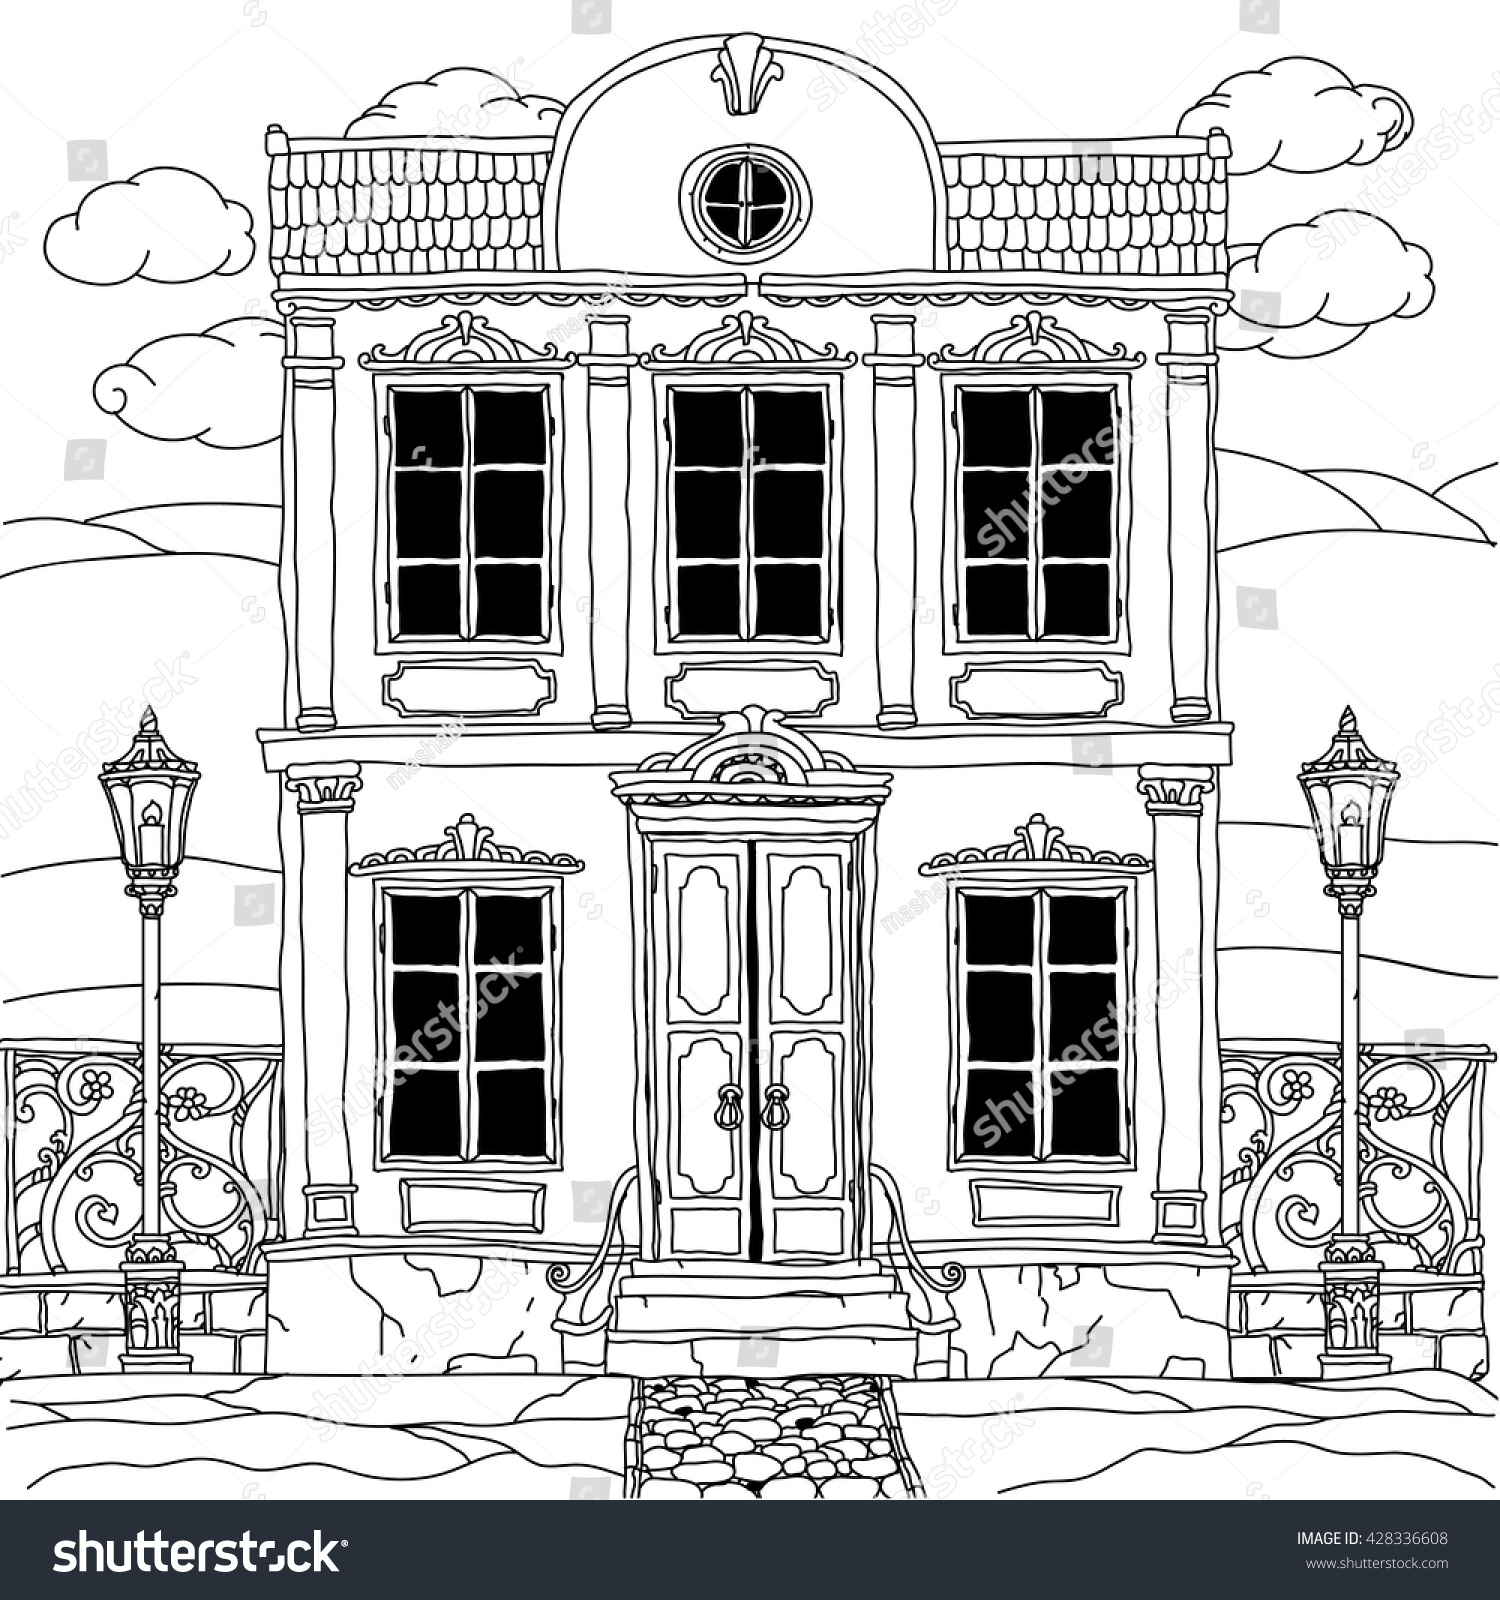 The coloring book poster - House Drawing With Details For Adult Coloring Book Or For Zen Art Therapy Anti Stress Drawing